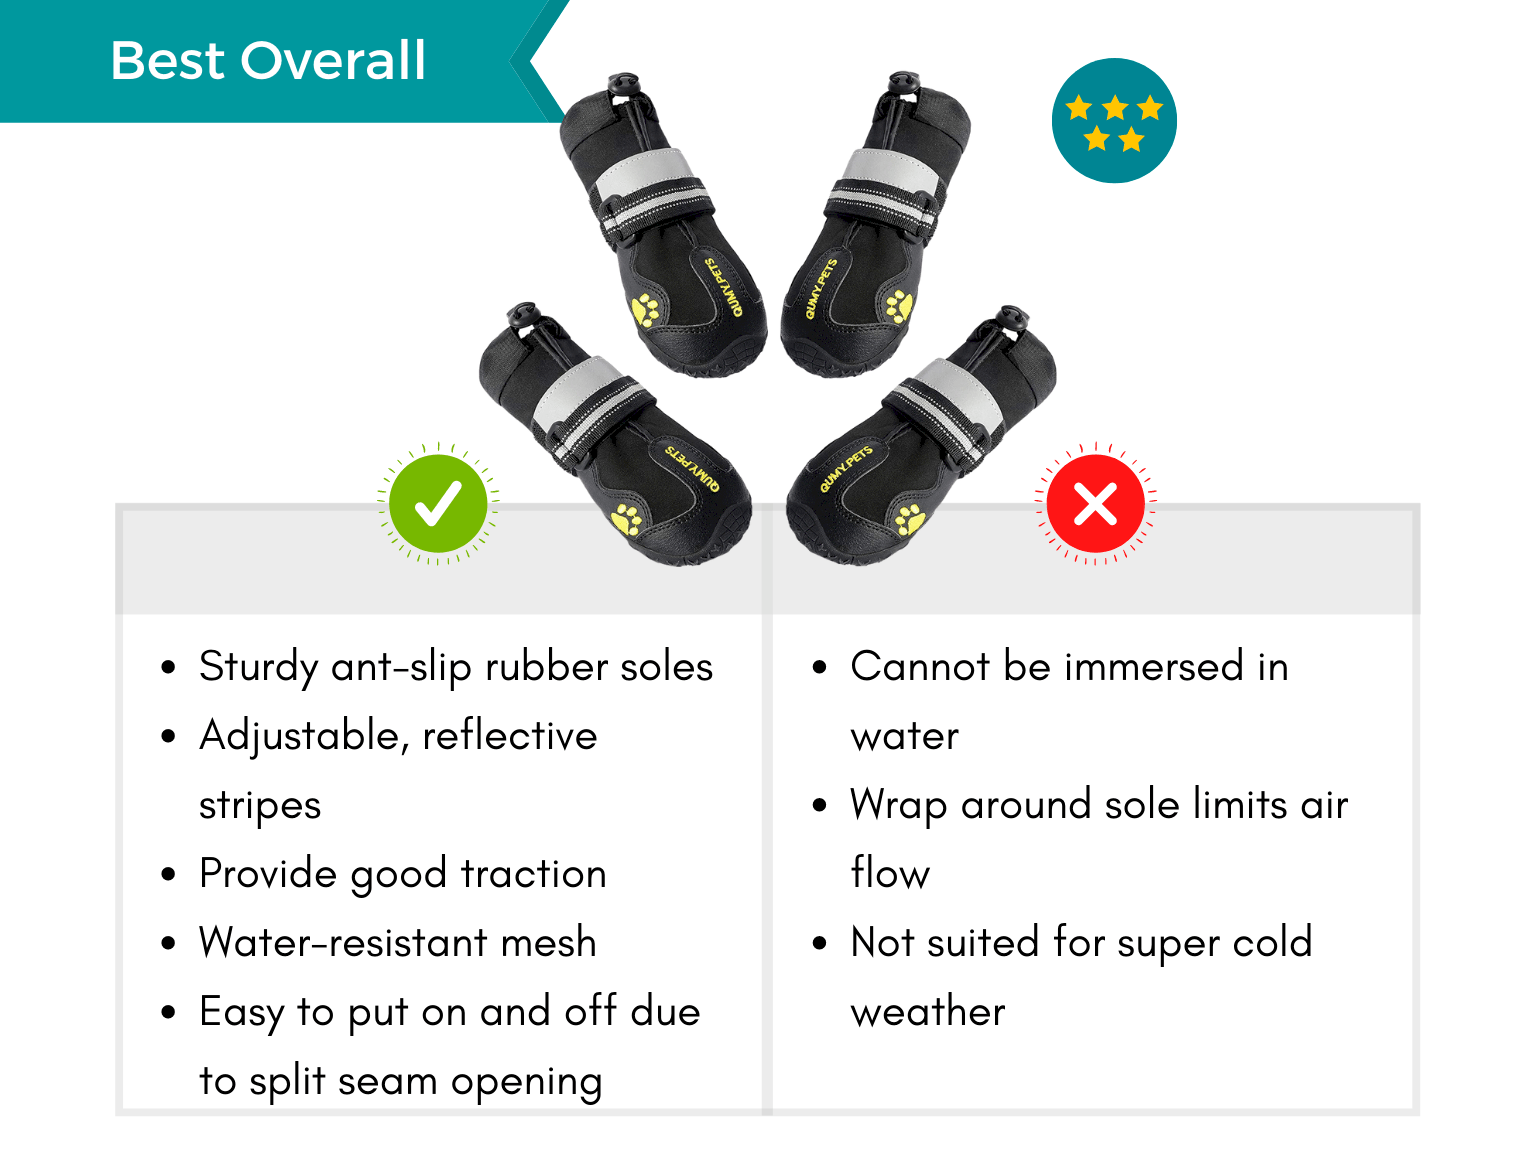 Infographic displaying pros and cons of the best overall dog boots for winter.